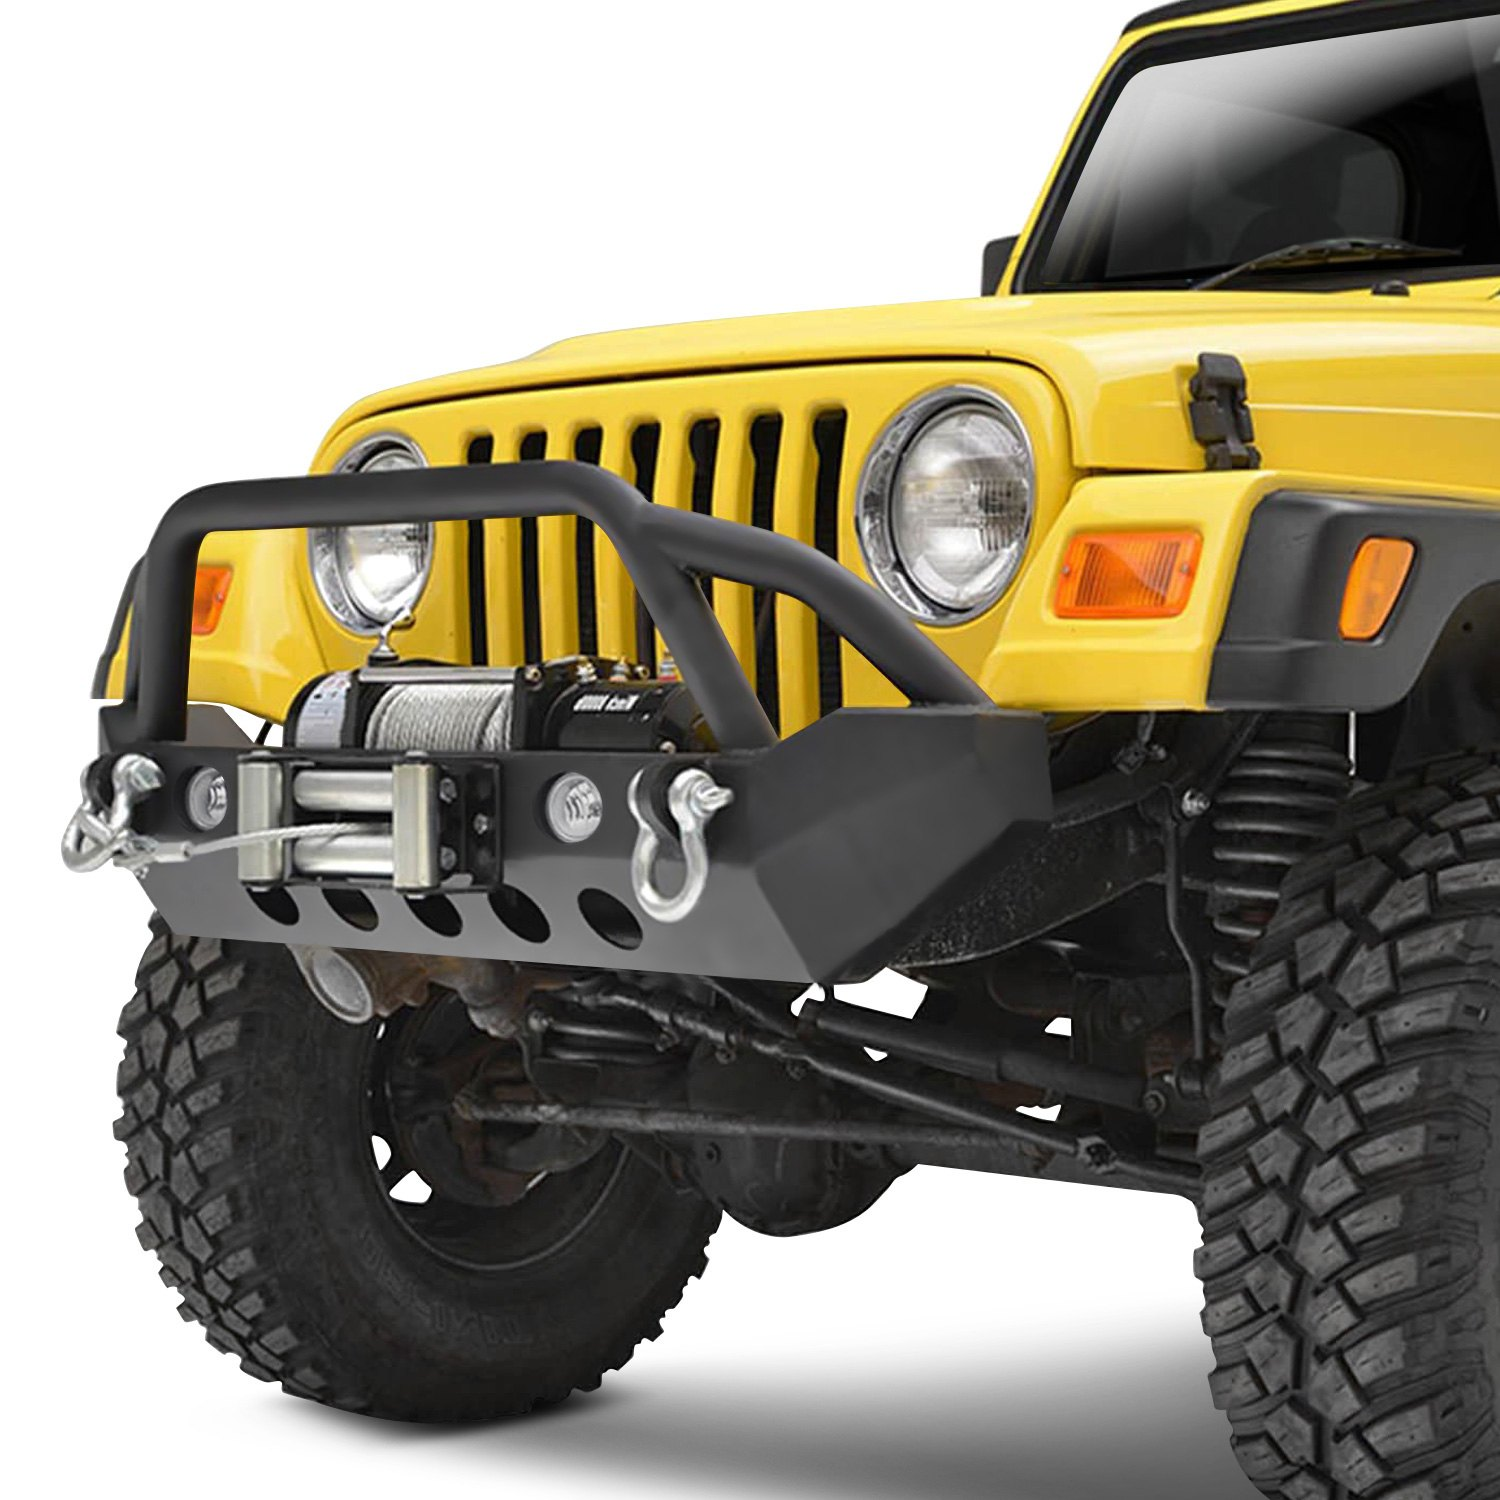 Paramount Jeep Wrangler 2013 Off Road Stubby Black Front Winch Hd Bumper With Pre Runner Guard